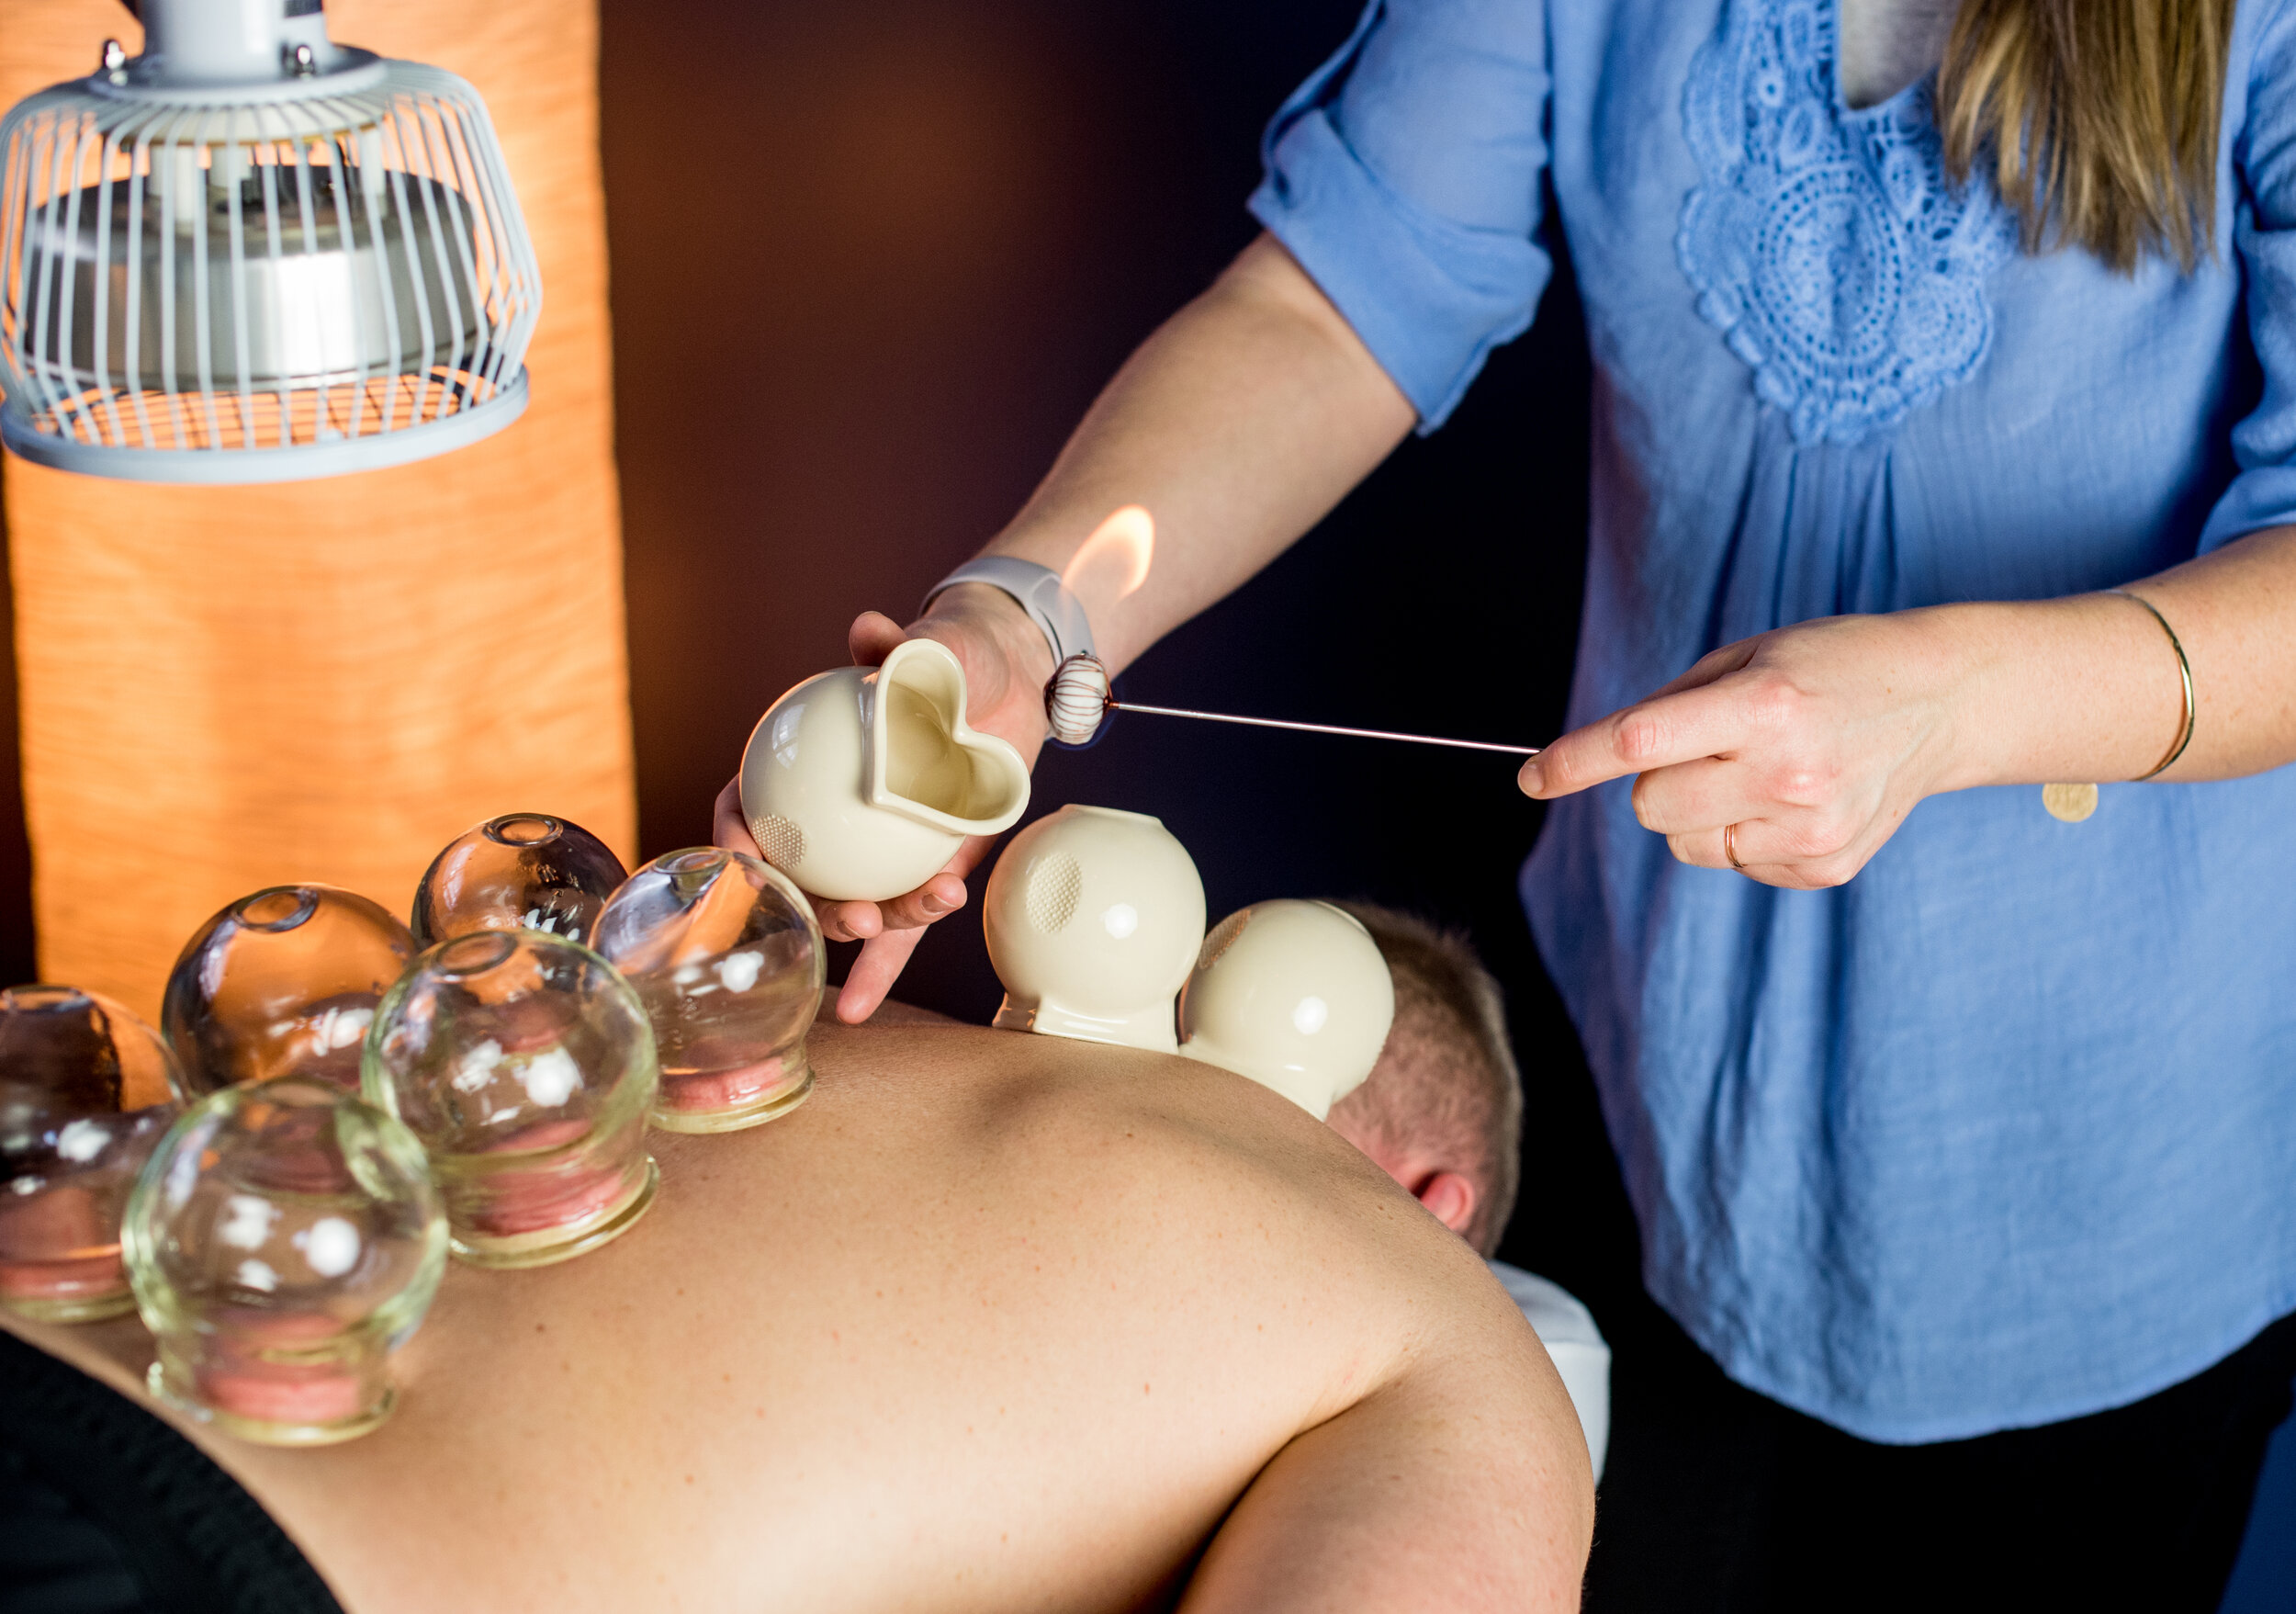 Emily performing cupping therapy on a patient